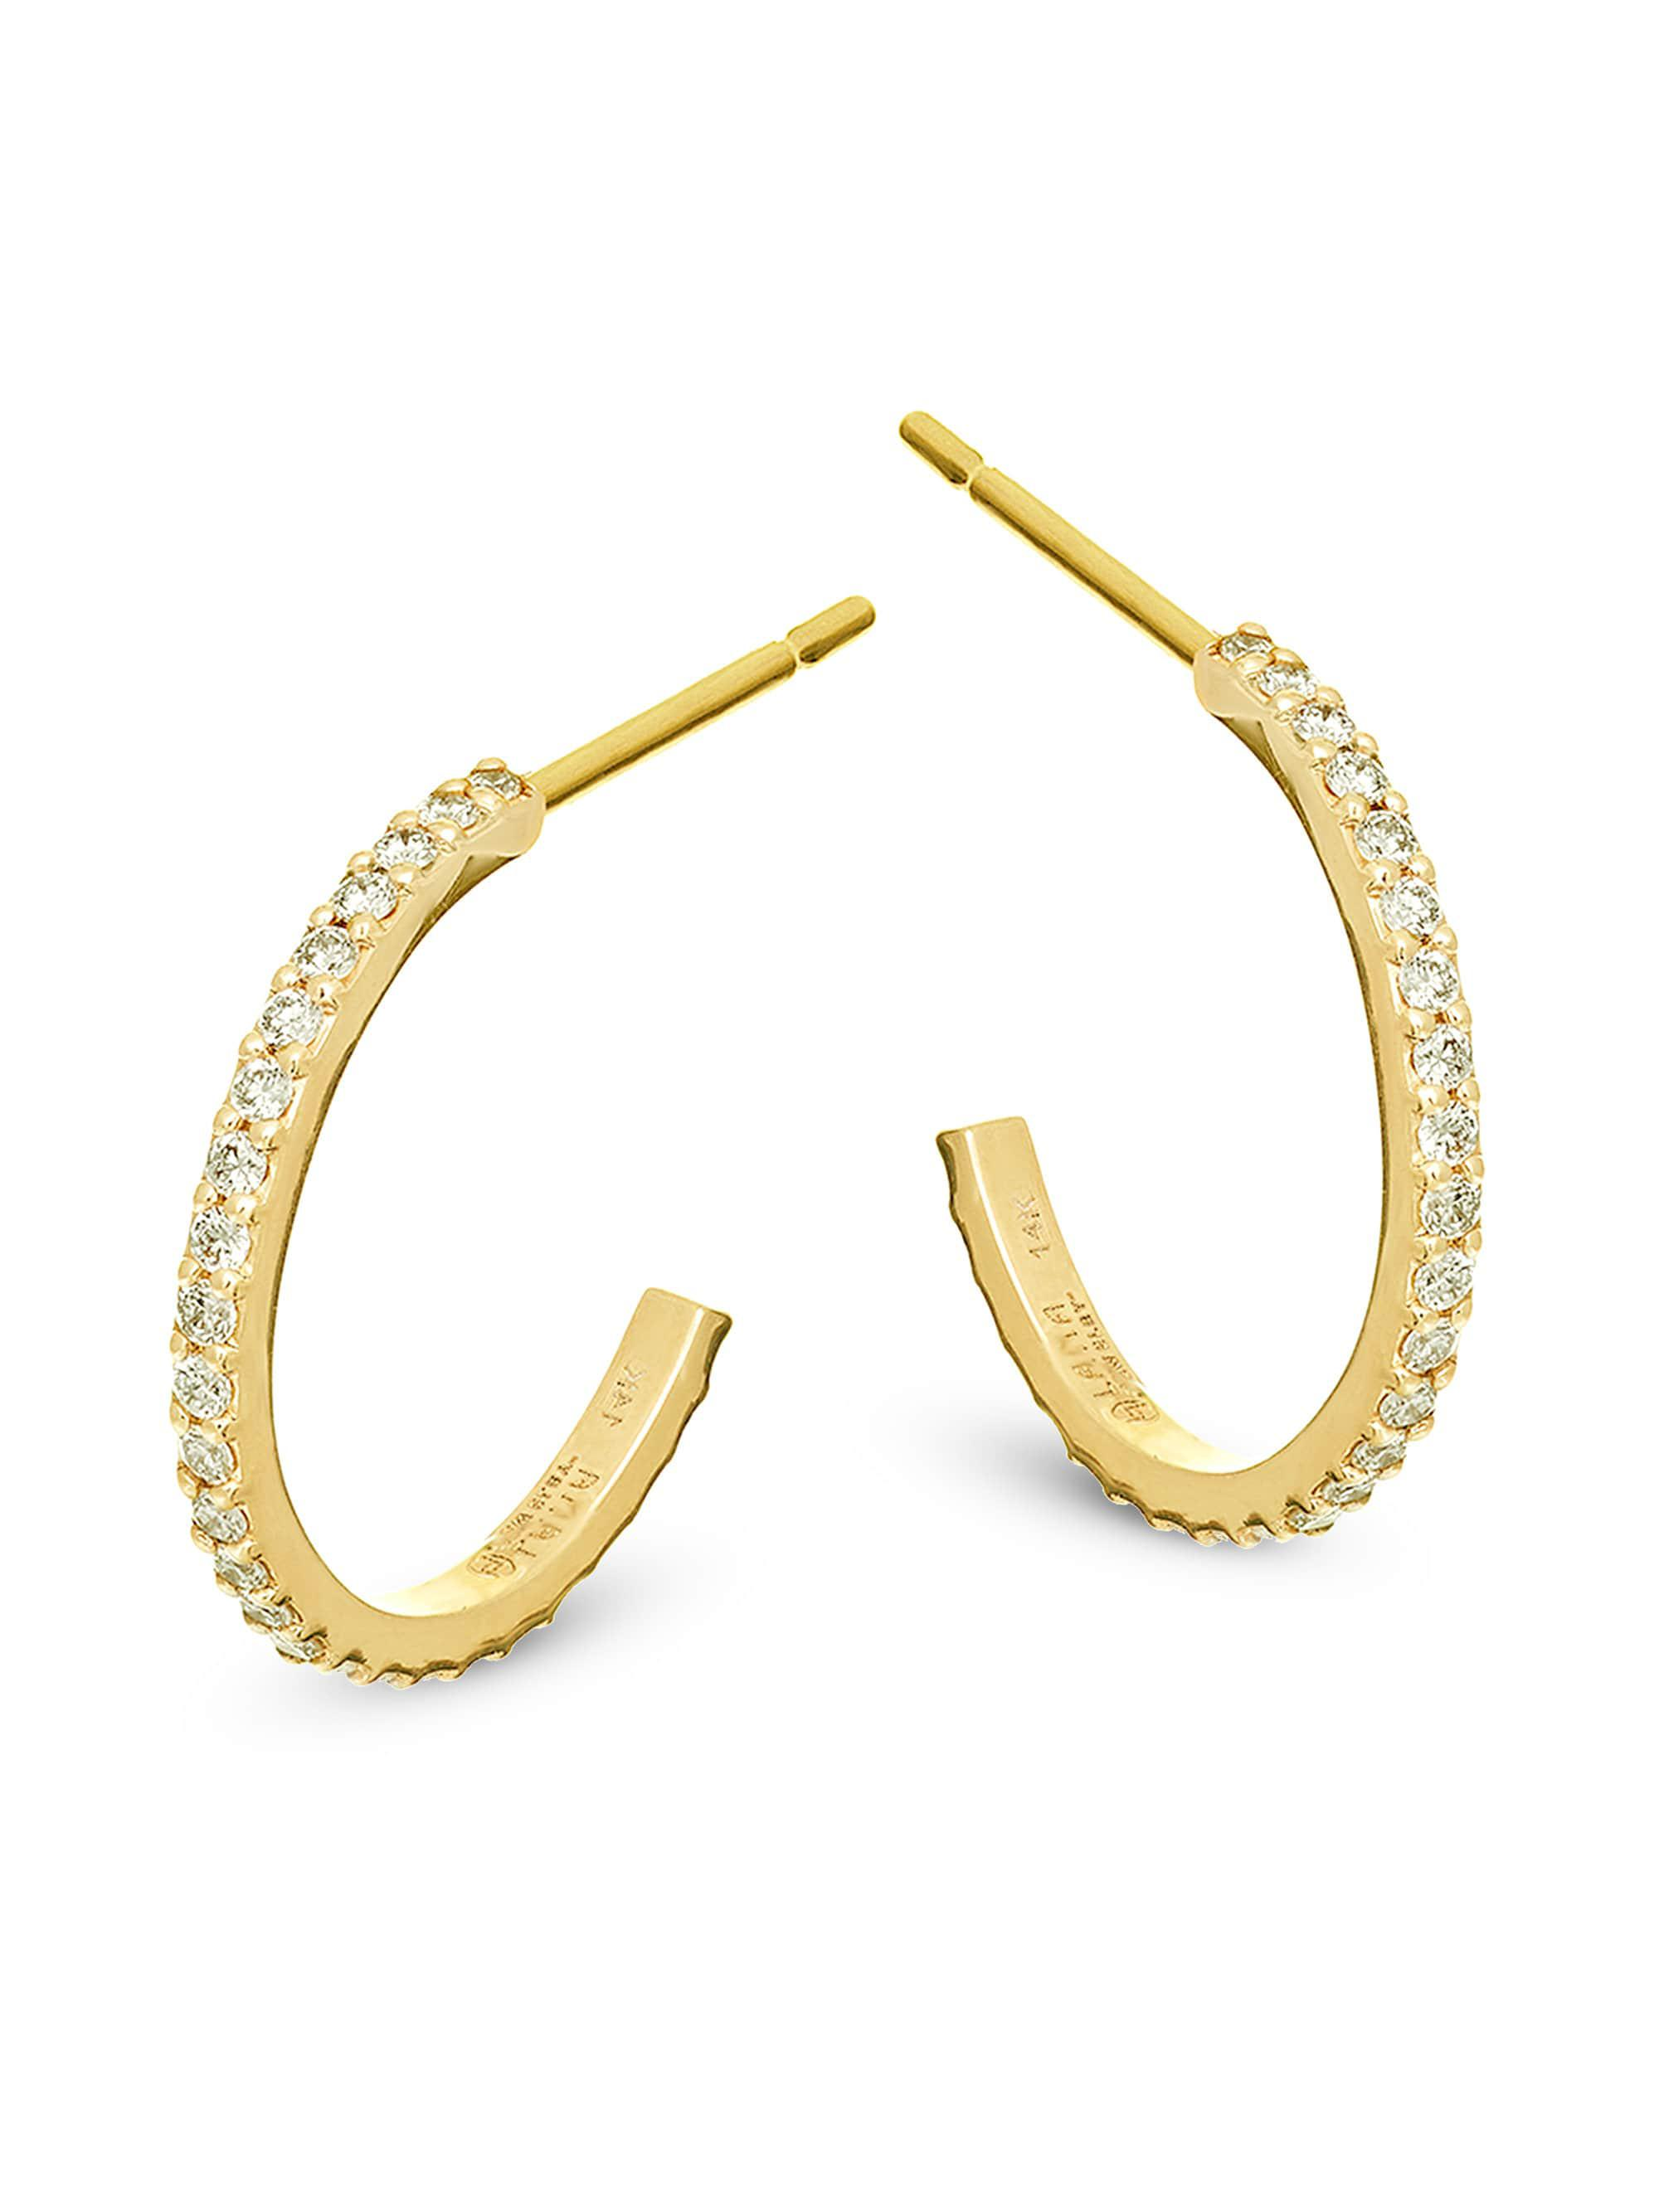 Lana Jewelry Flawless Mini Diamond Hoop Earrings in 14K Yellow Gold 9qV4X